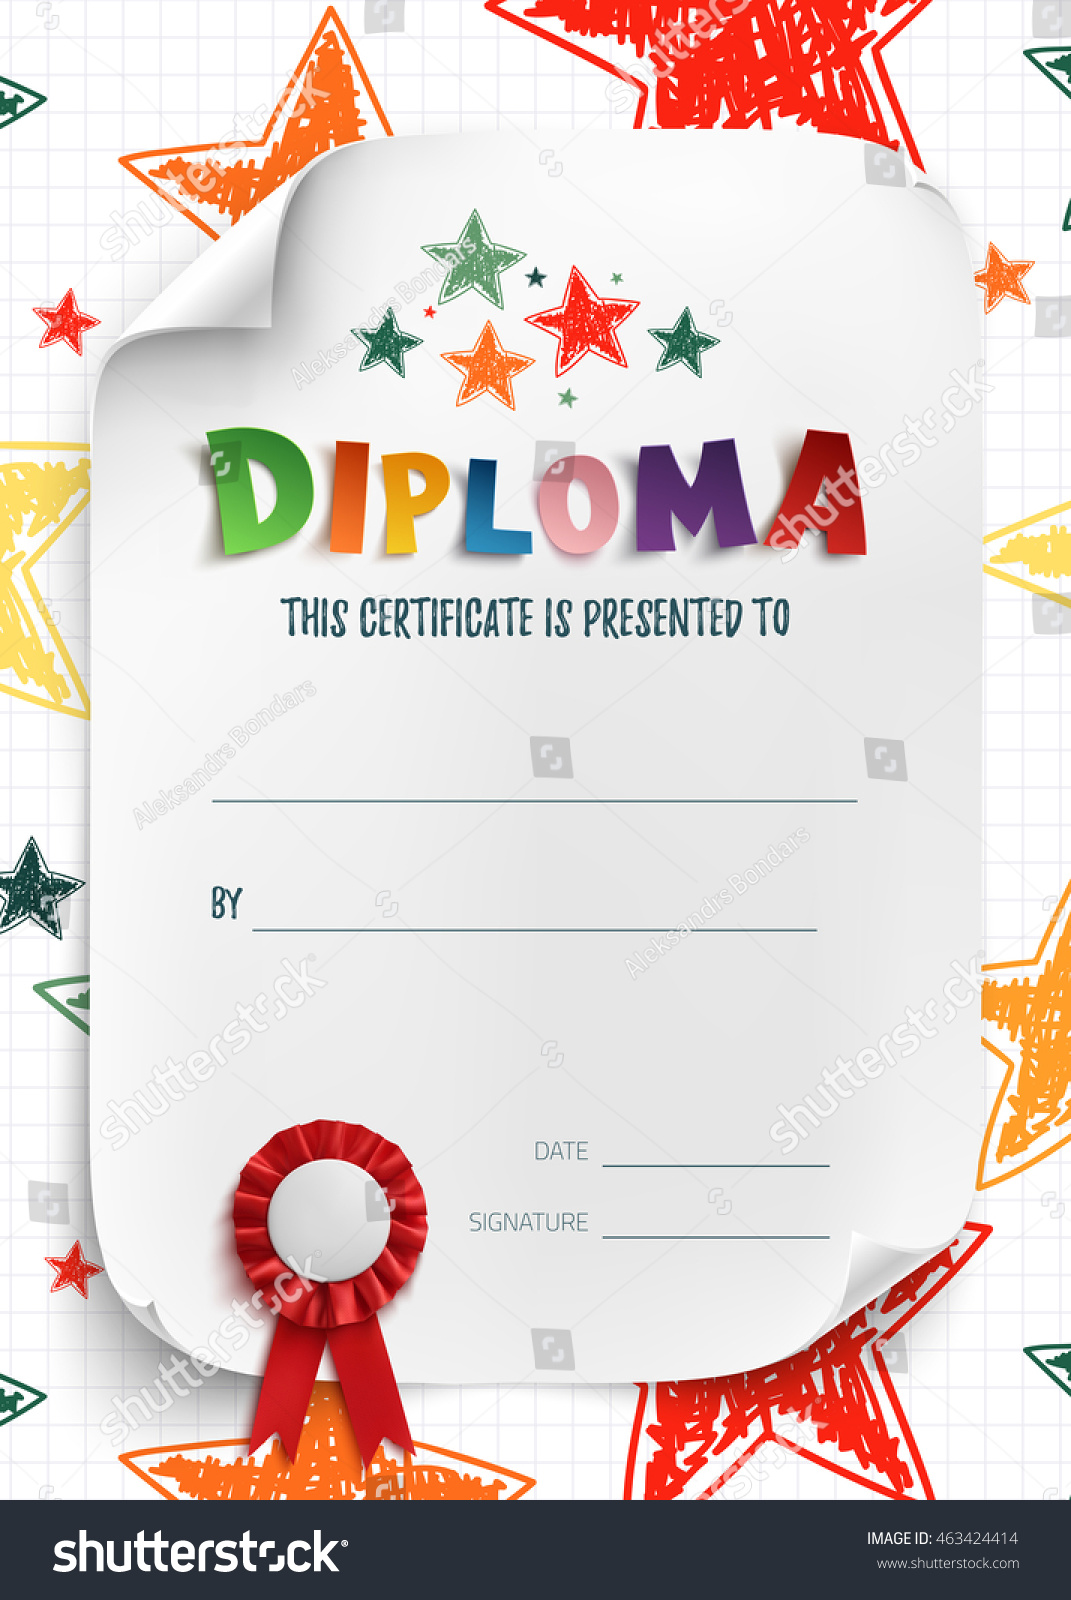 Diploma Template Kids Certificate Background Hand Stock Illustration